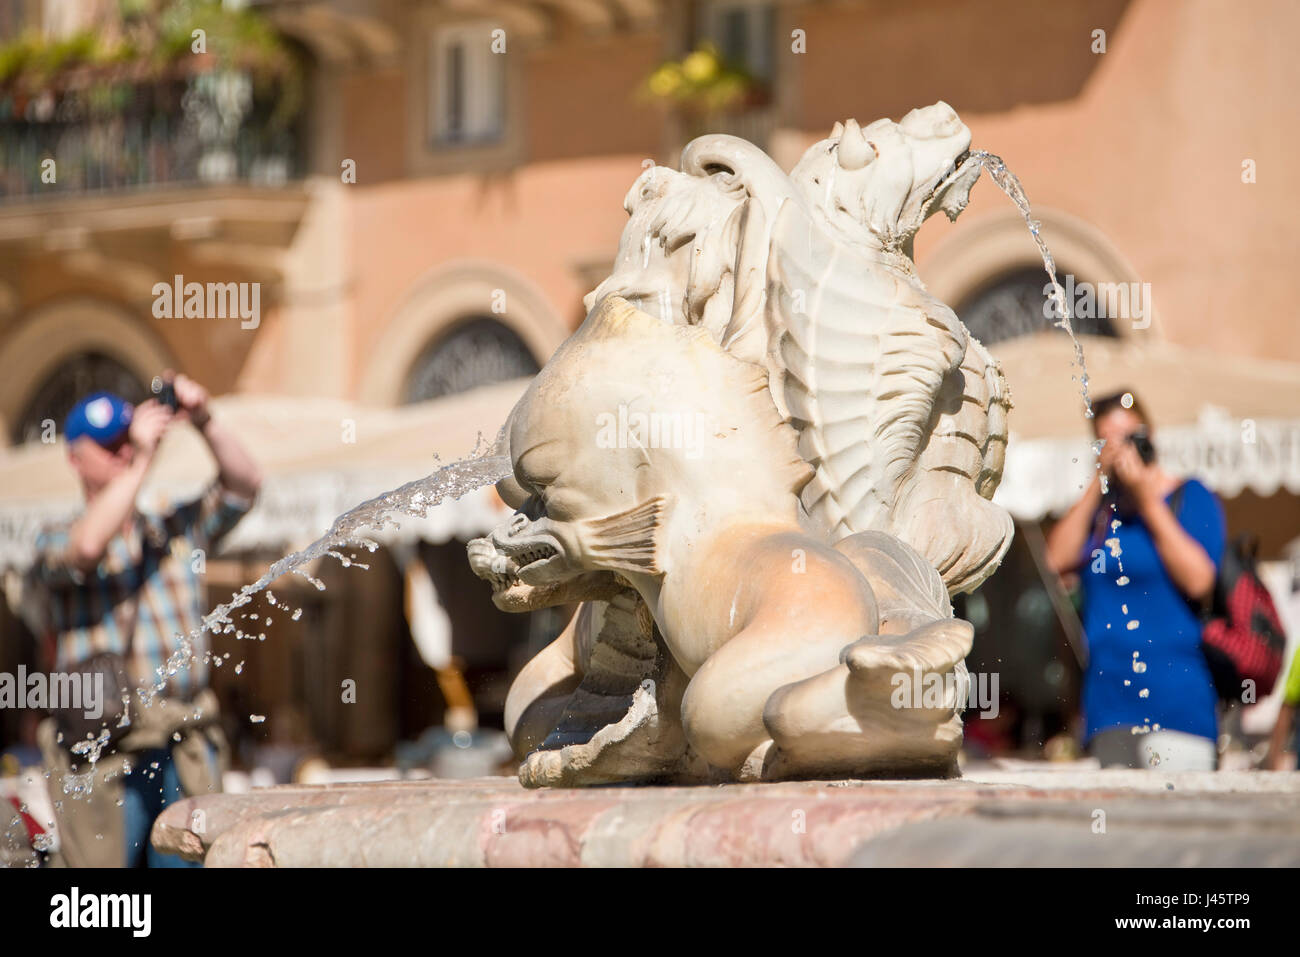 A close up on the Fontana del Moro or Moor Fountain in Piazza Navona with 2 out of focus people tourists visitors - Stock Image